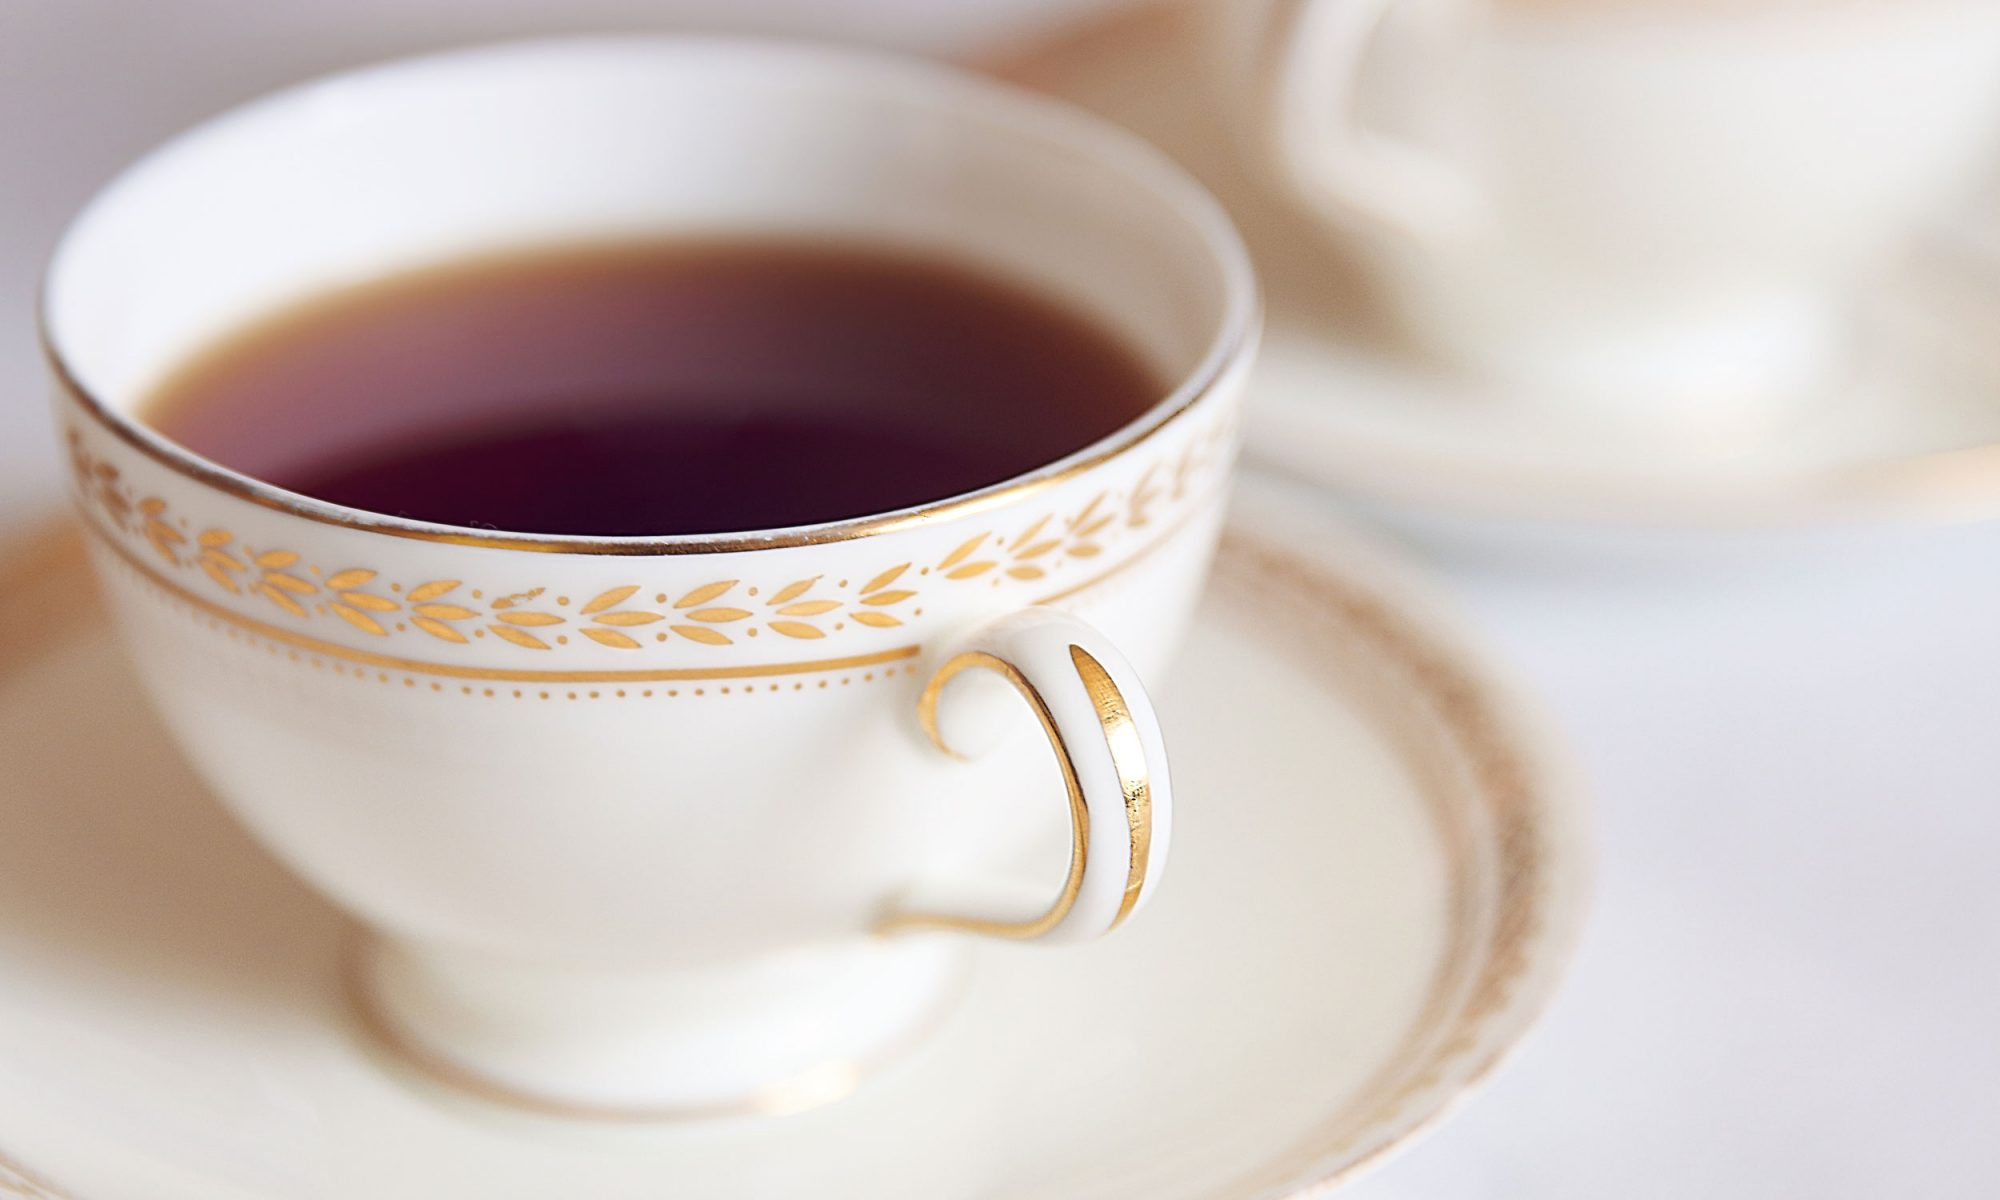 EC: I Tried 7 English Breakfast Teas and Here's the Best One